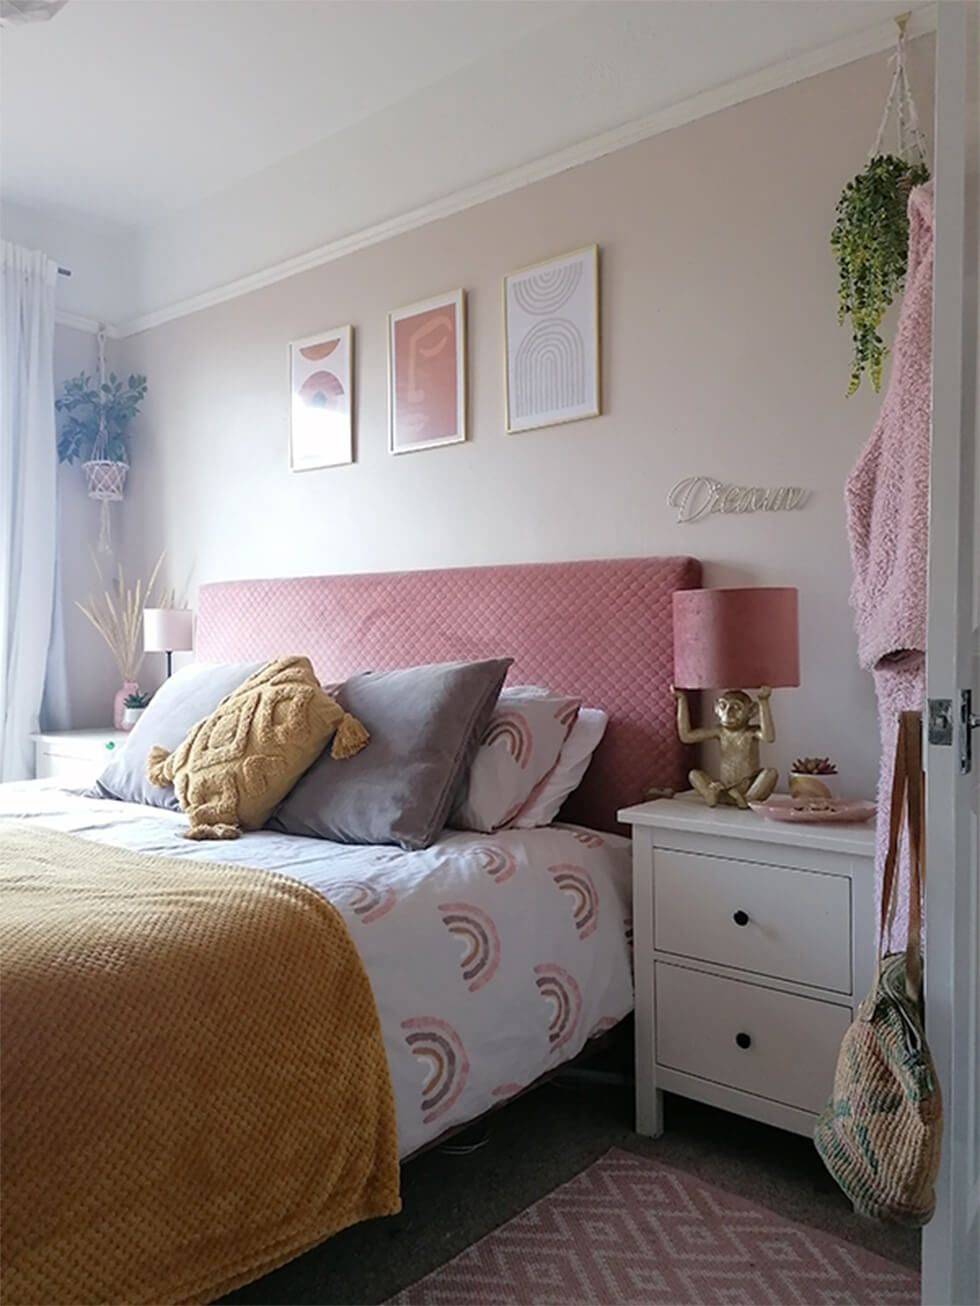 Bedroom with pink accents and hanging plants